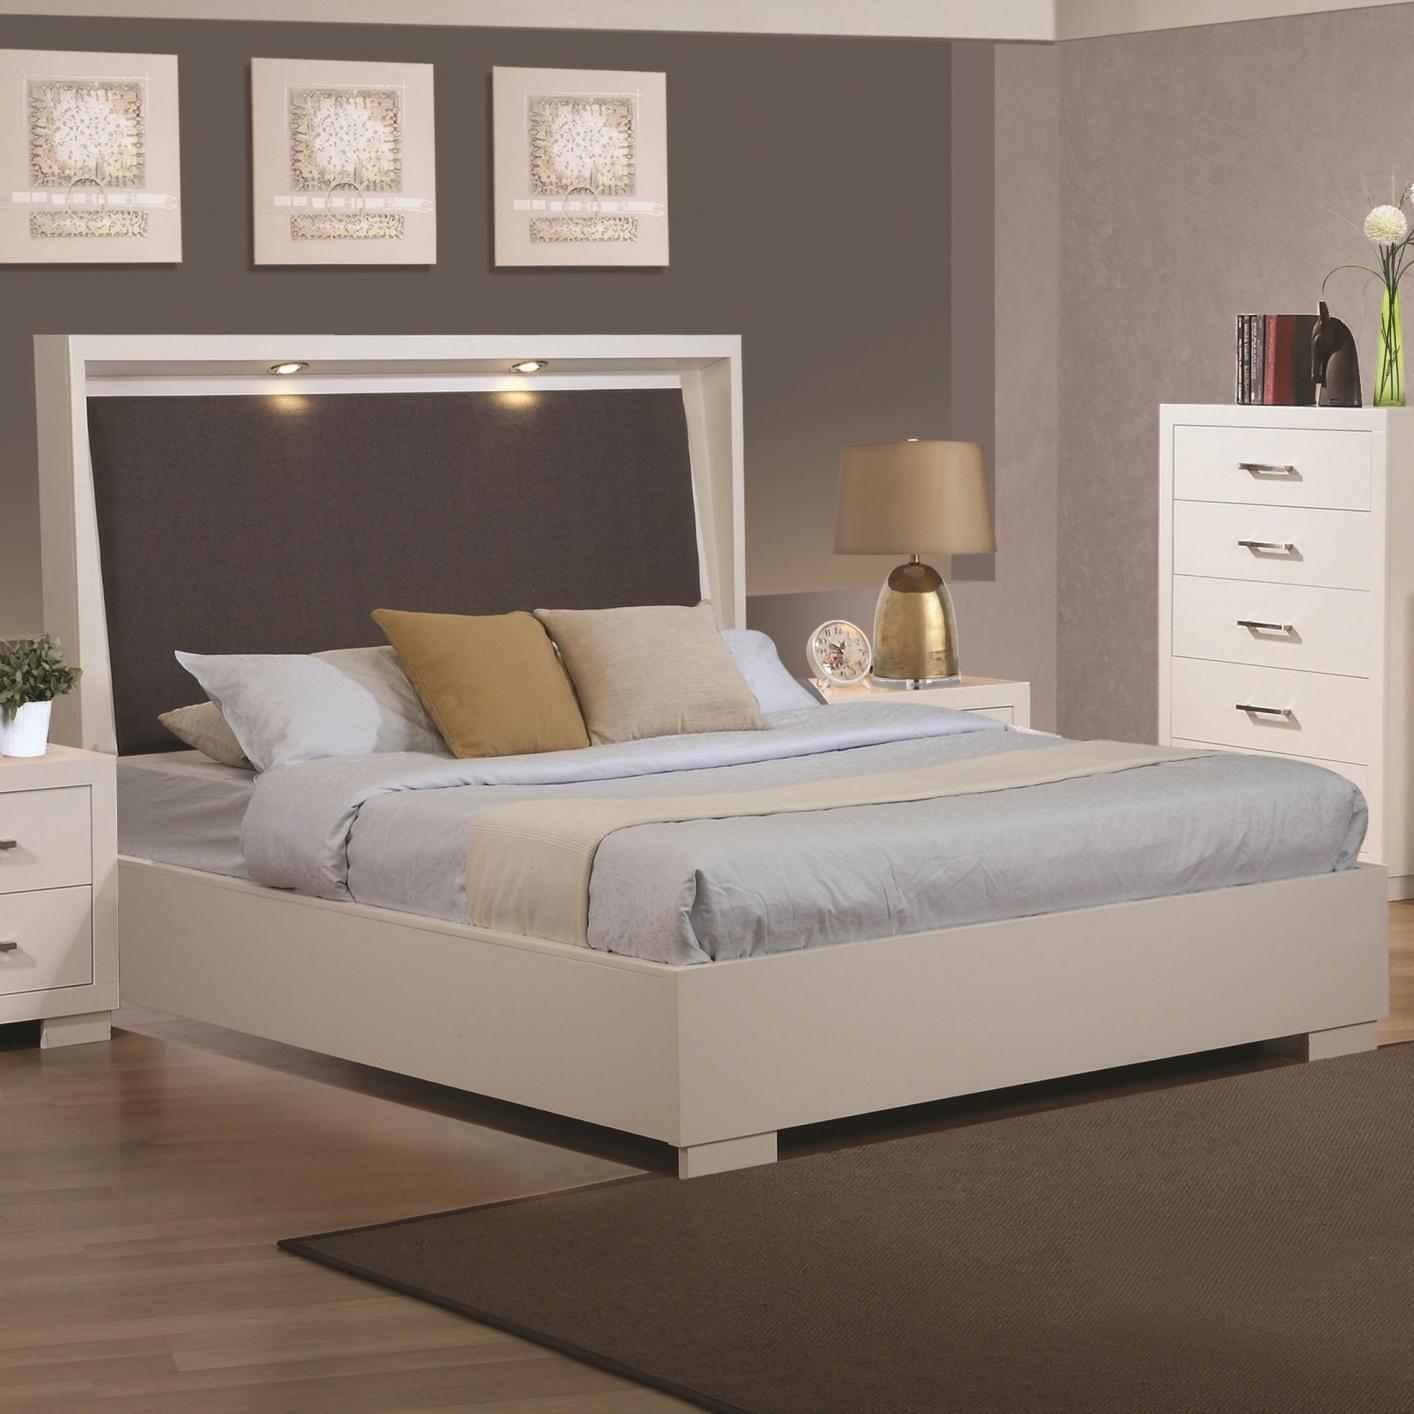 Coaster 200920kw white wood california king size bed for Bedroom furniture 90036